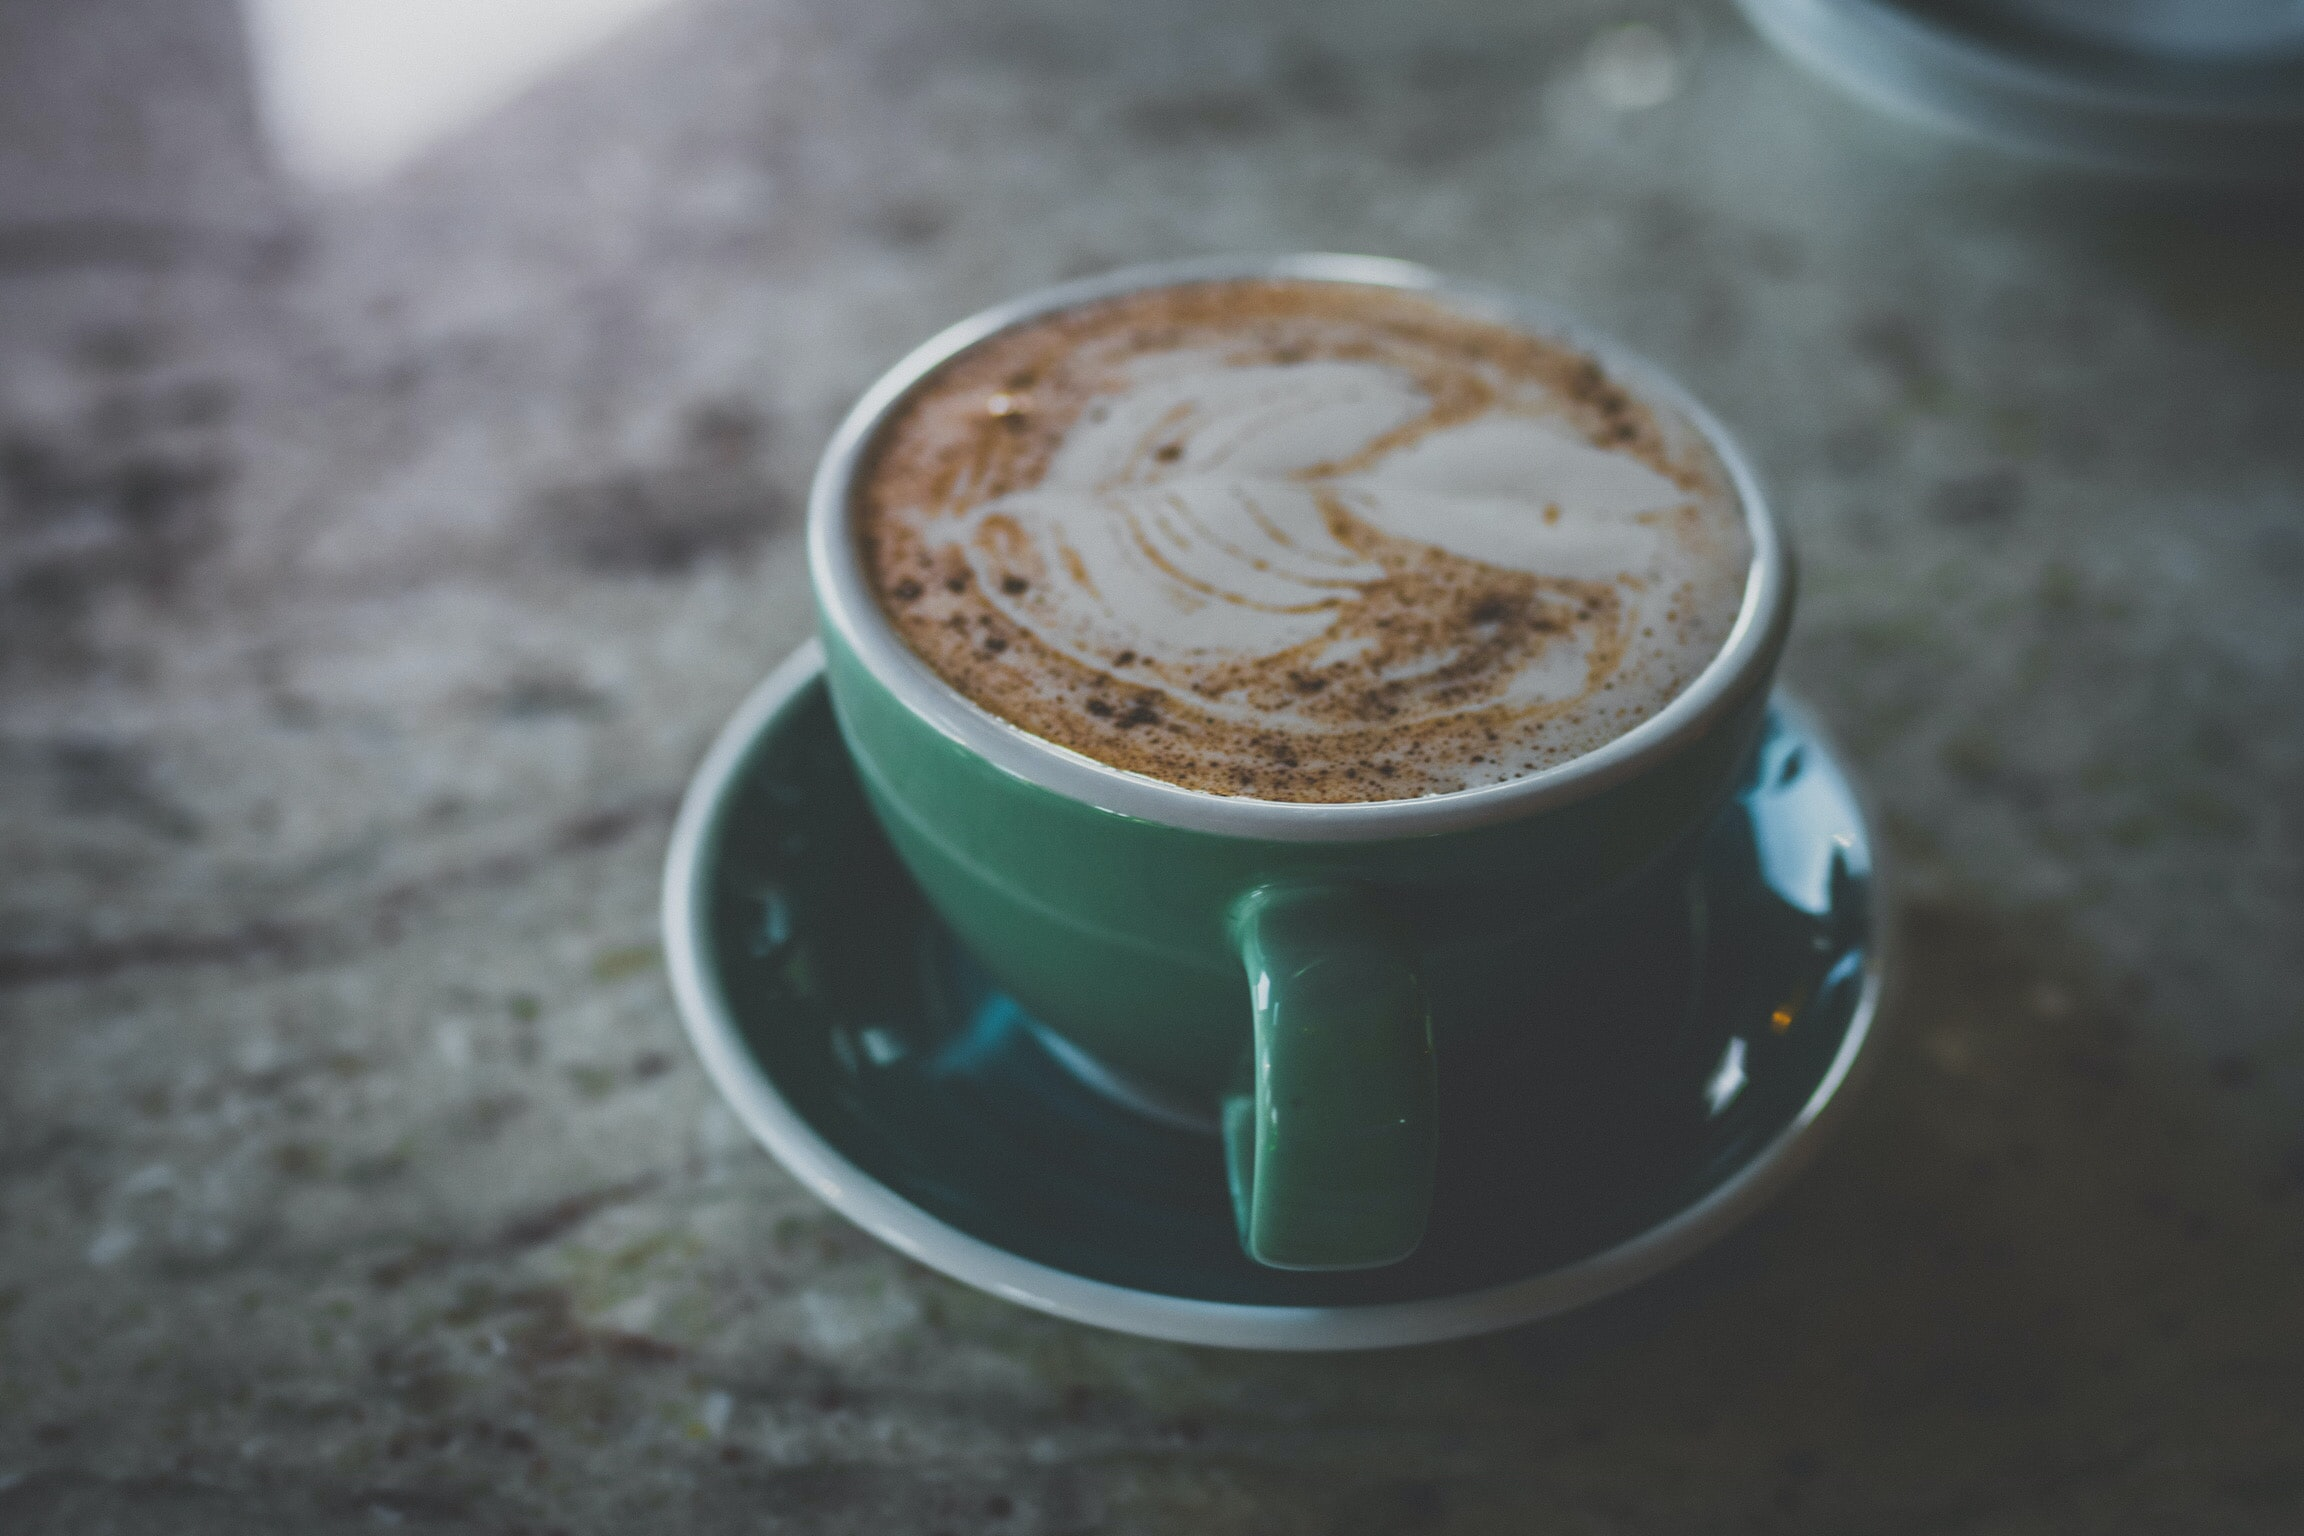 cappuccino in green cup